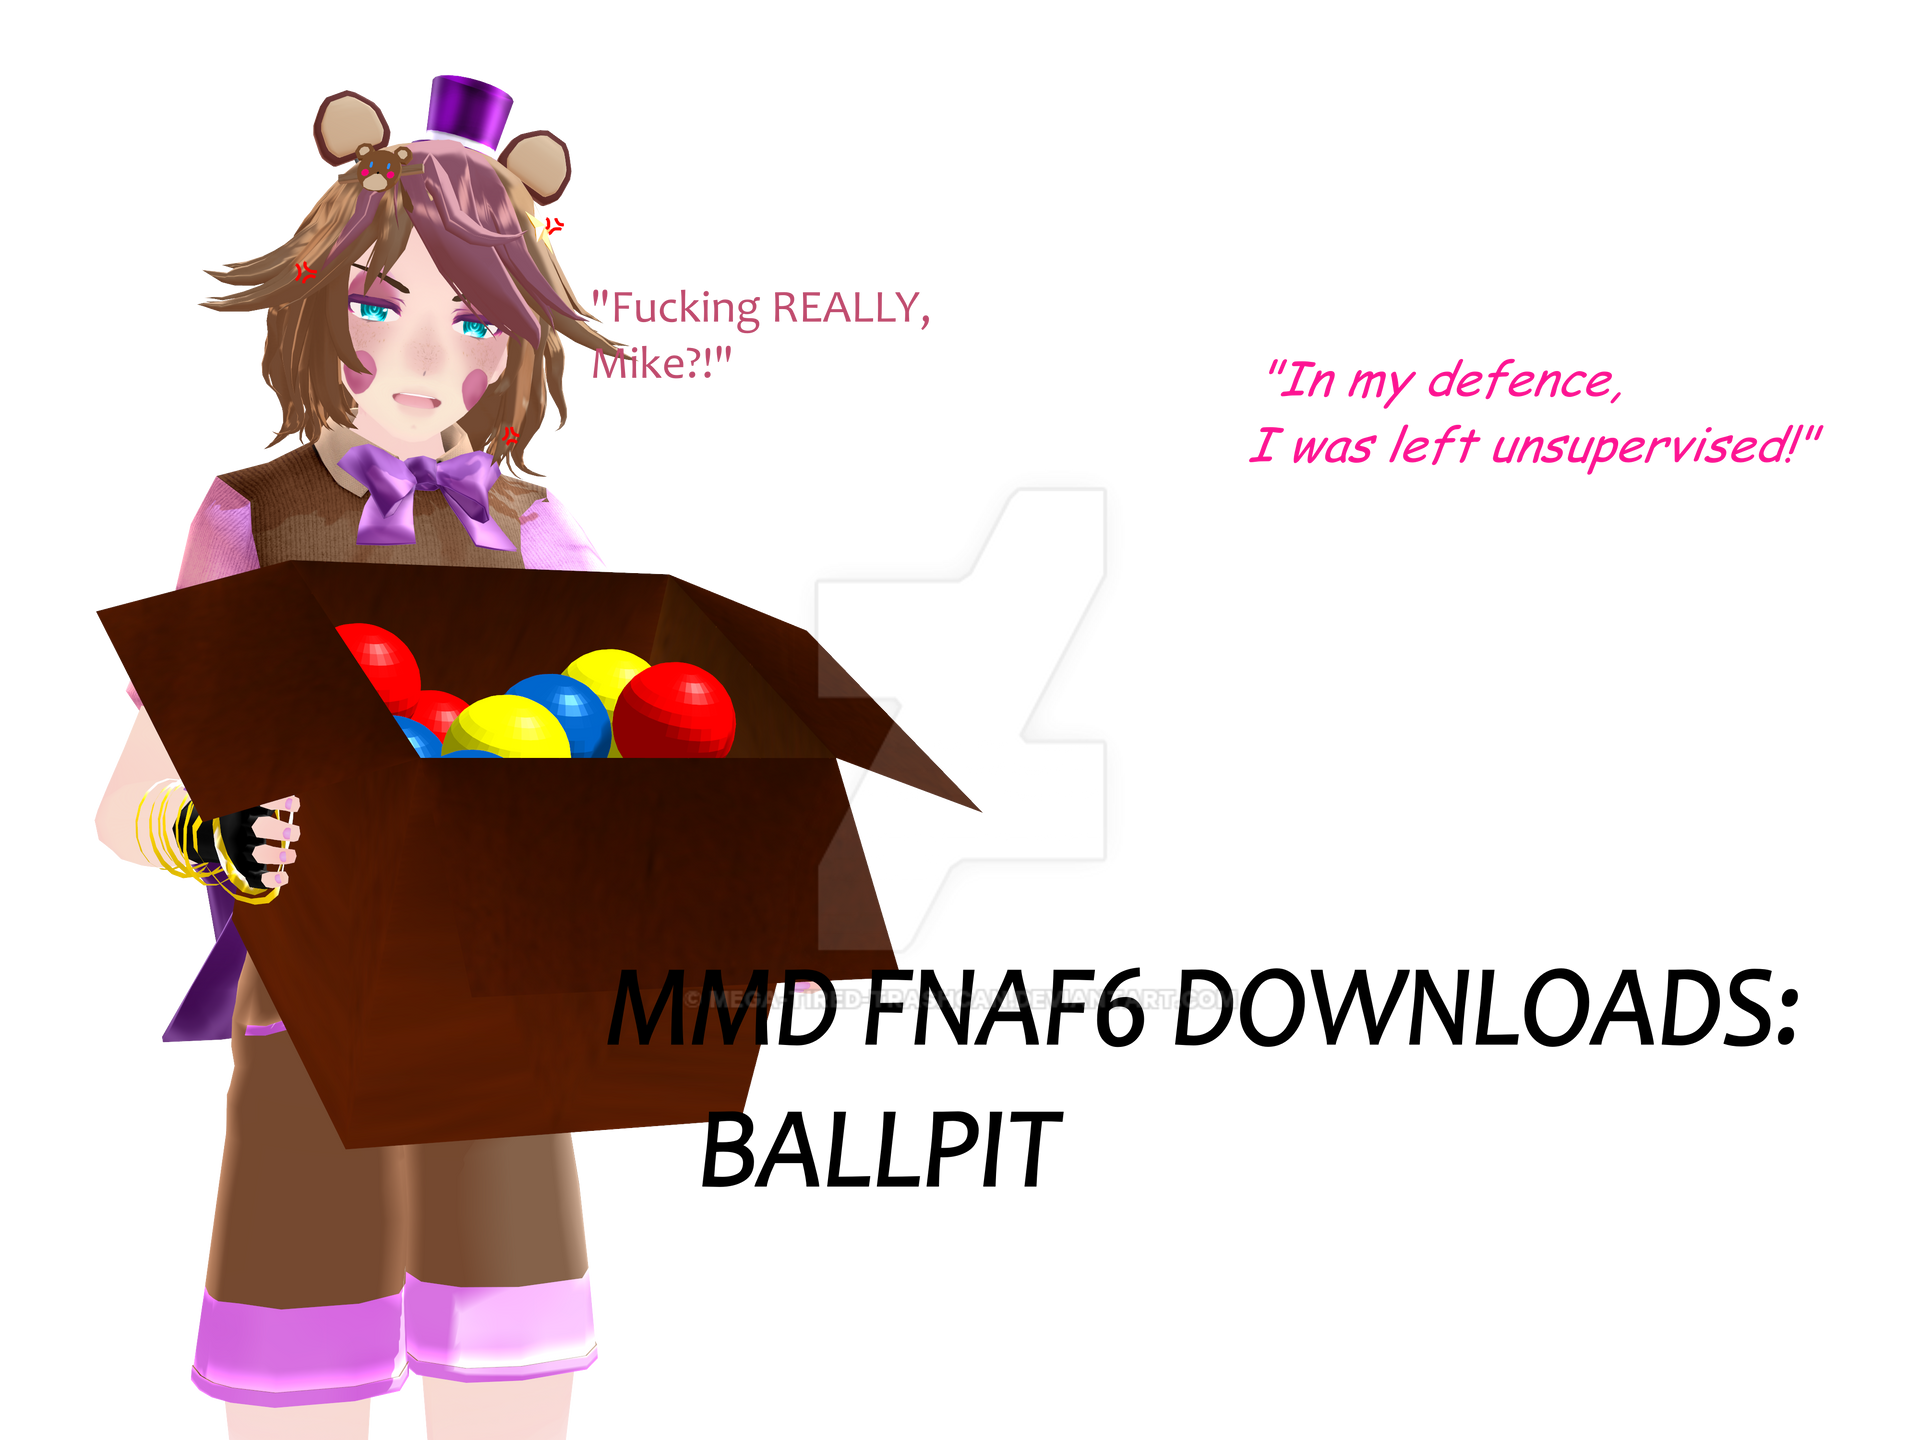 Accessory and Props on MMD-Resources - DeviantArt